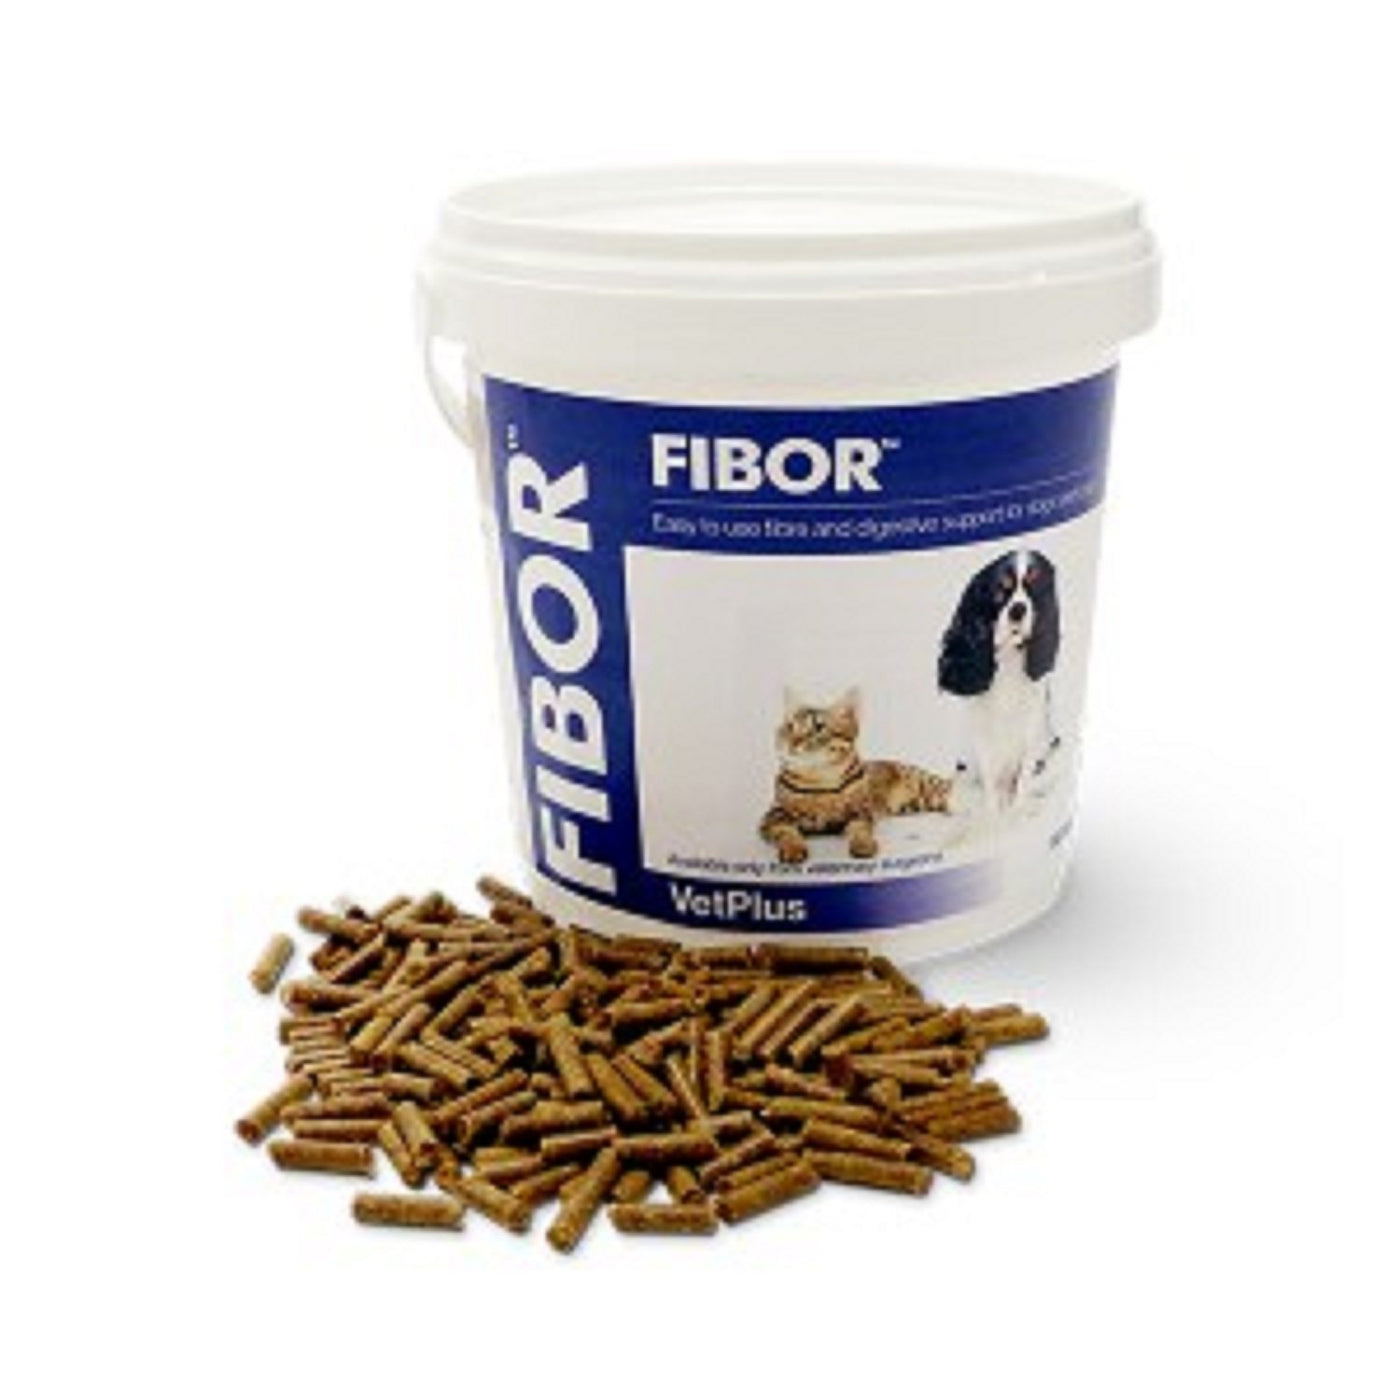 Fibor 500GM For Dogs And Cats